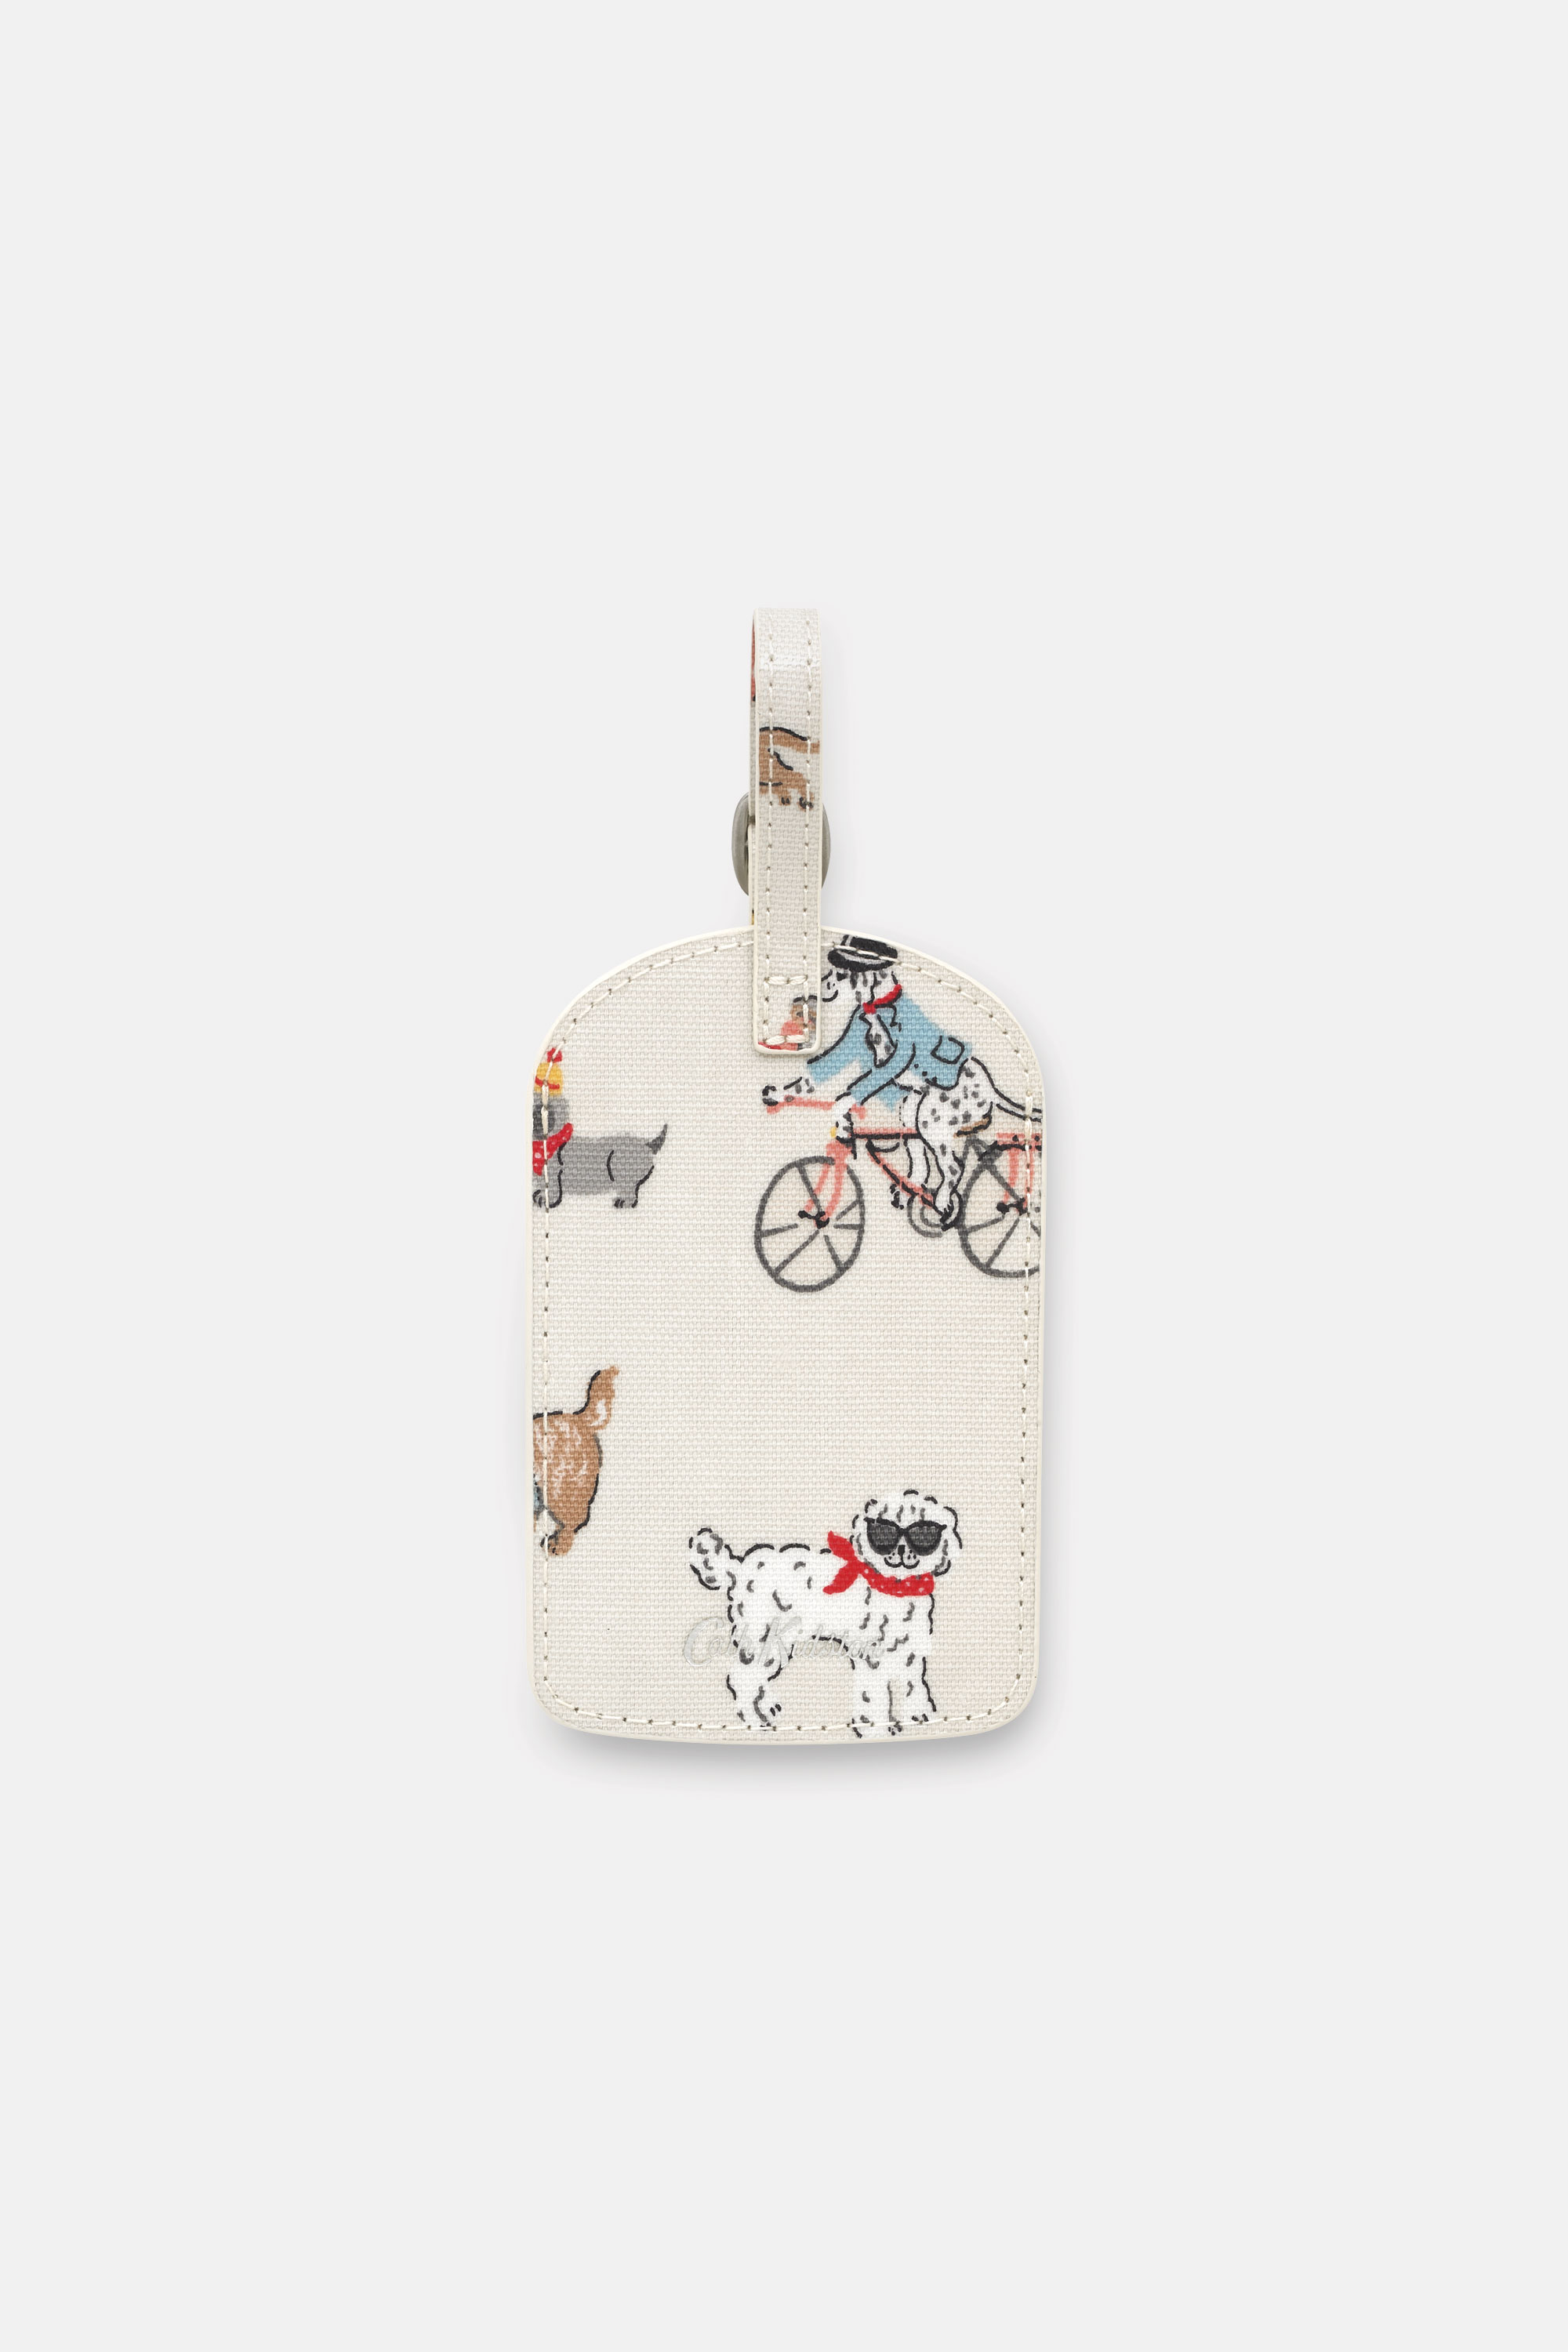 Cath Kidston Small Park Dogs Luggage Tag in Warm Cream